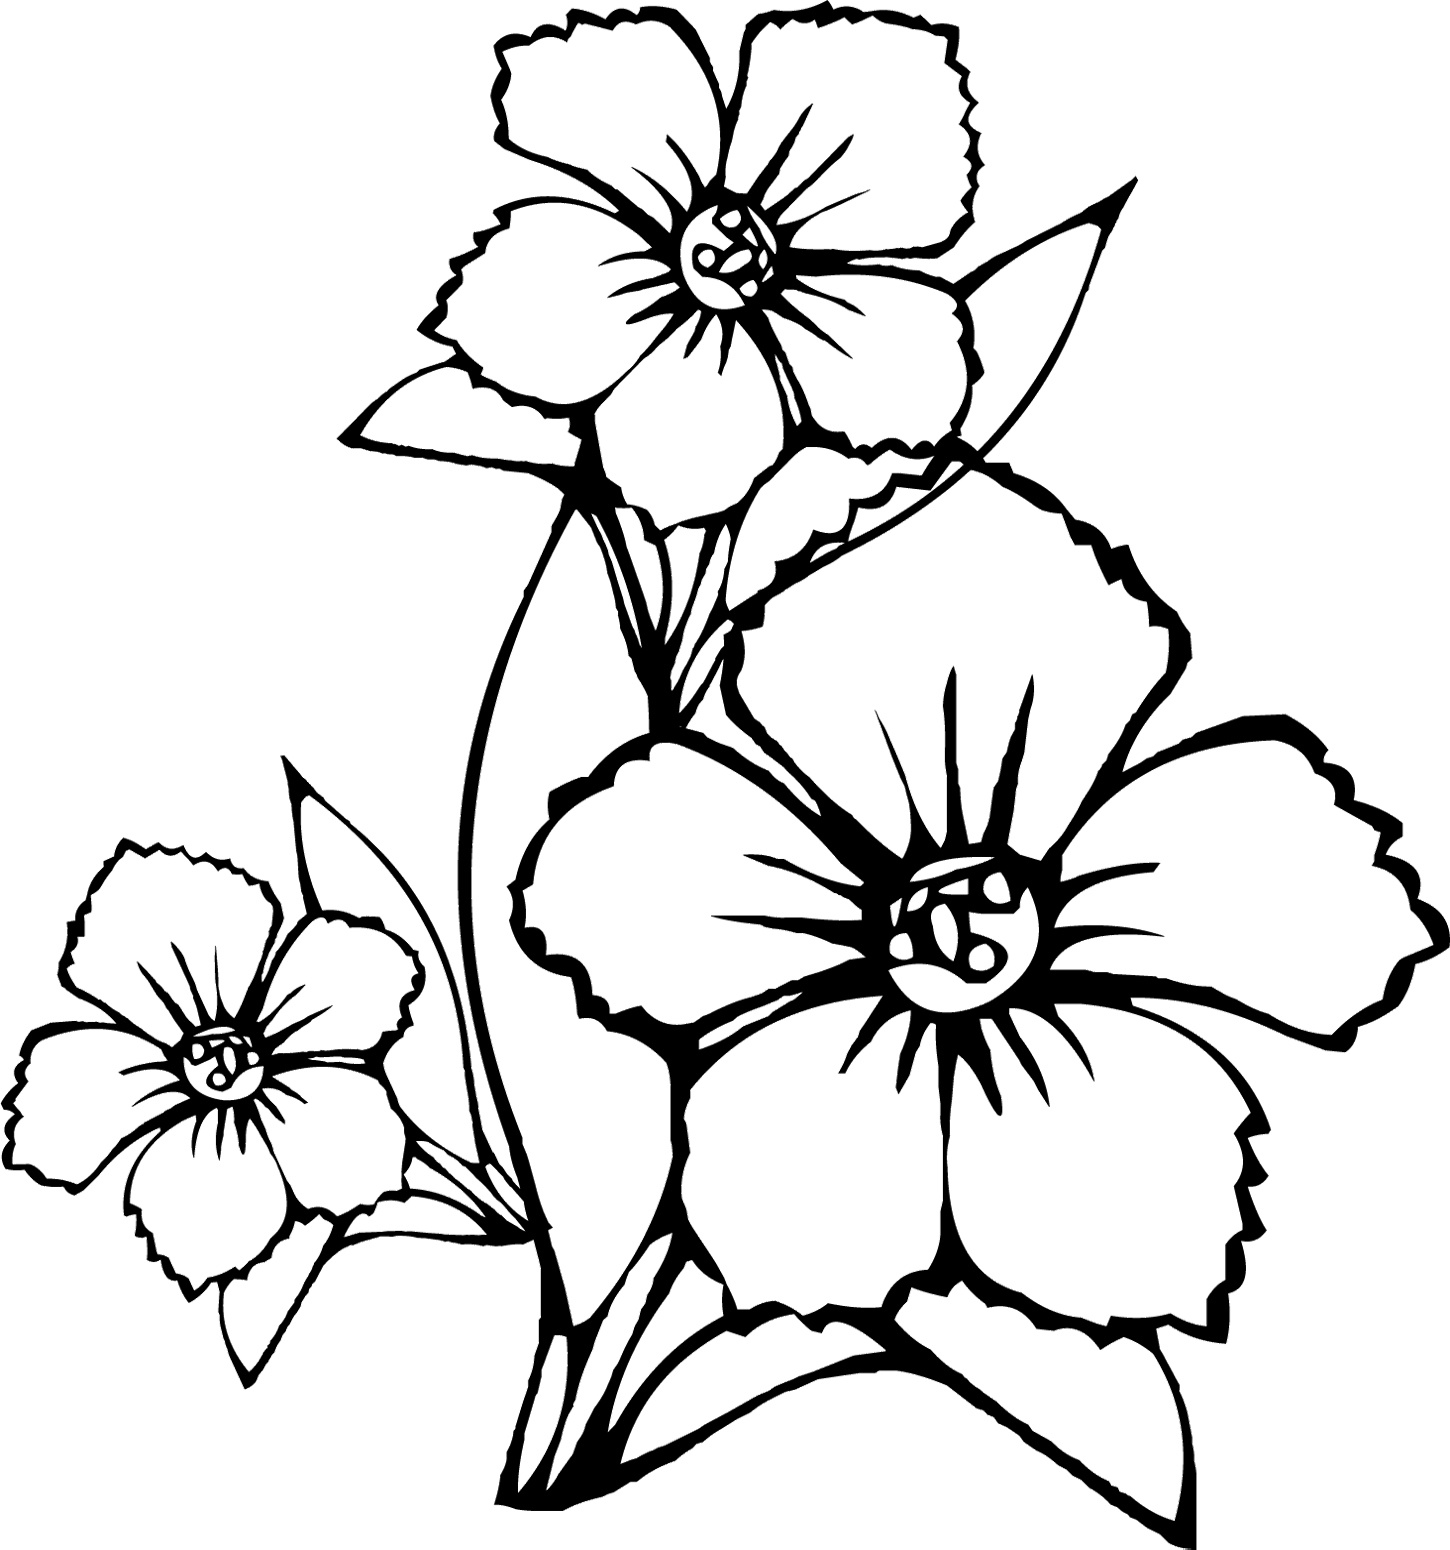 1450x1550 Cute Flower Coloring Pages For Girls Good Draw Photo Printable